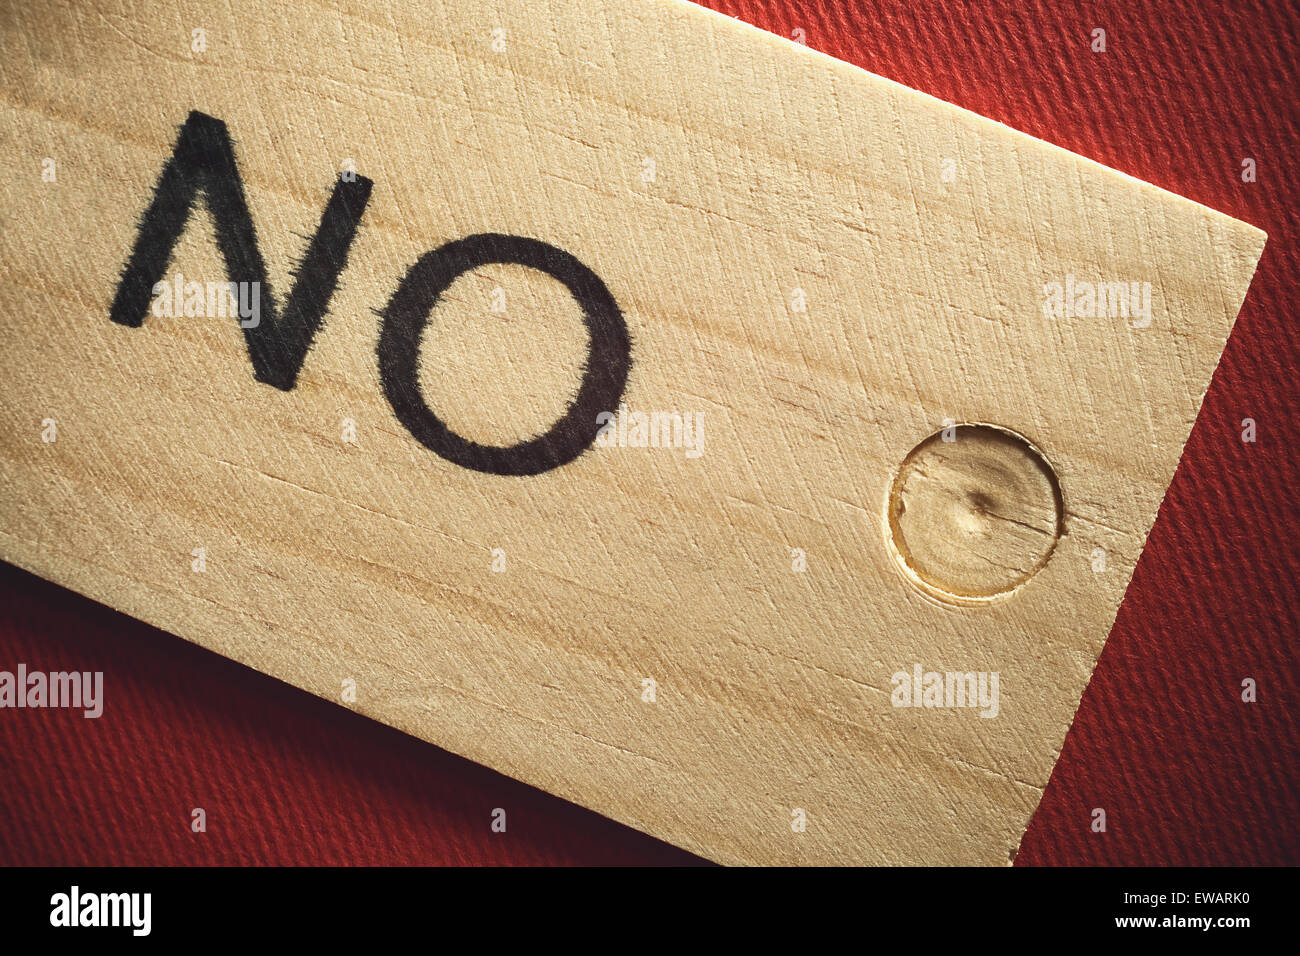 Word no written on wooden tile, red textured background. - Stock Image